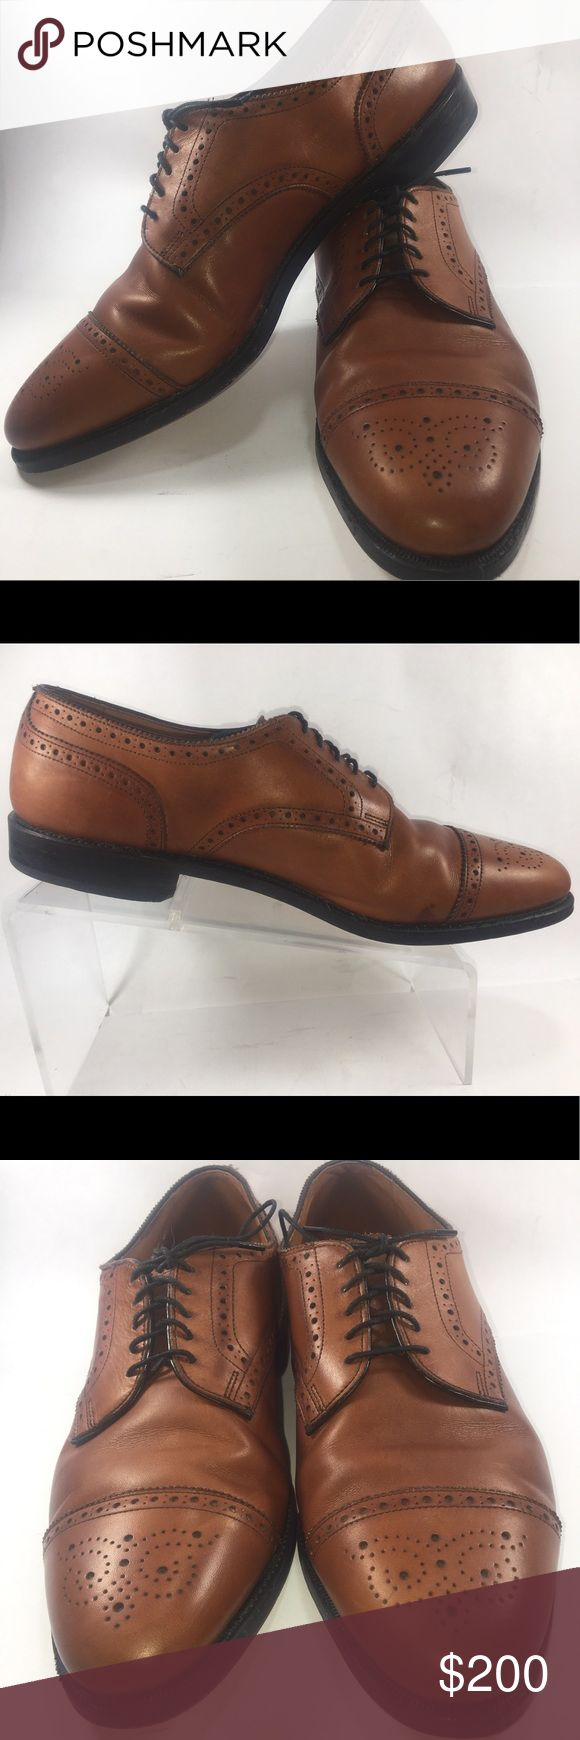 Allen Edmonds Sanford Walnut Cap Toe Oxfords 11 D Excellent Condition Some Normal Wear Including Scuffing & Sole Wear See Pictures. This Is A Highly Sought After Discontinued Model Allen Edmonds Sanford Walnut Cap Toe Lace Up Oxfords Size 11 D Shoe S318 Allen Edmonds Shoes Oxfords & Derbys